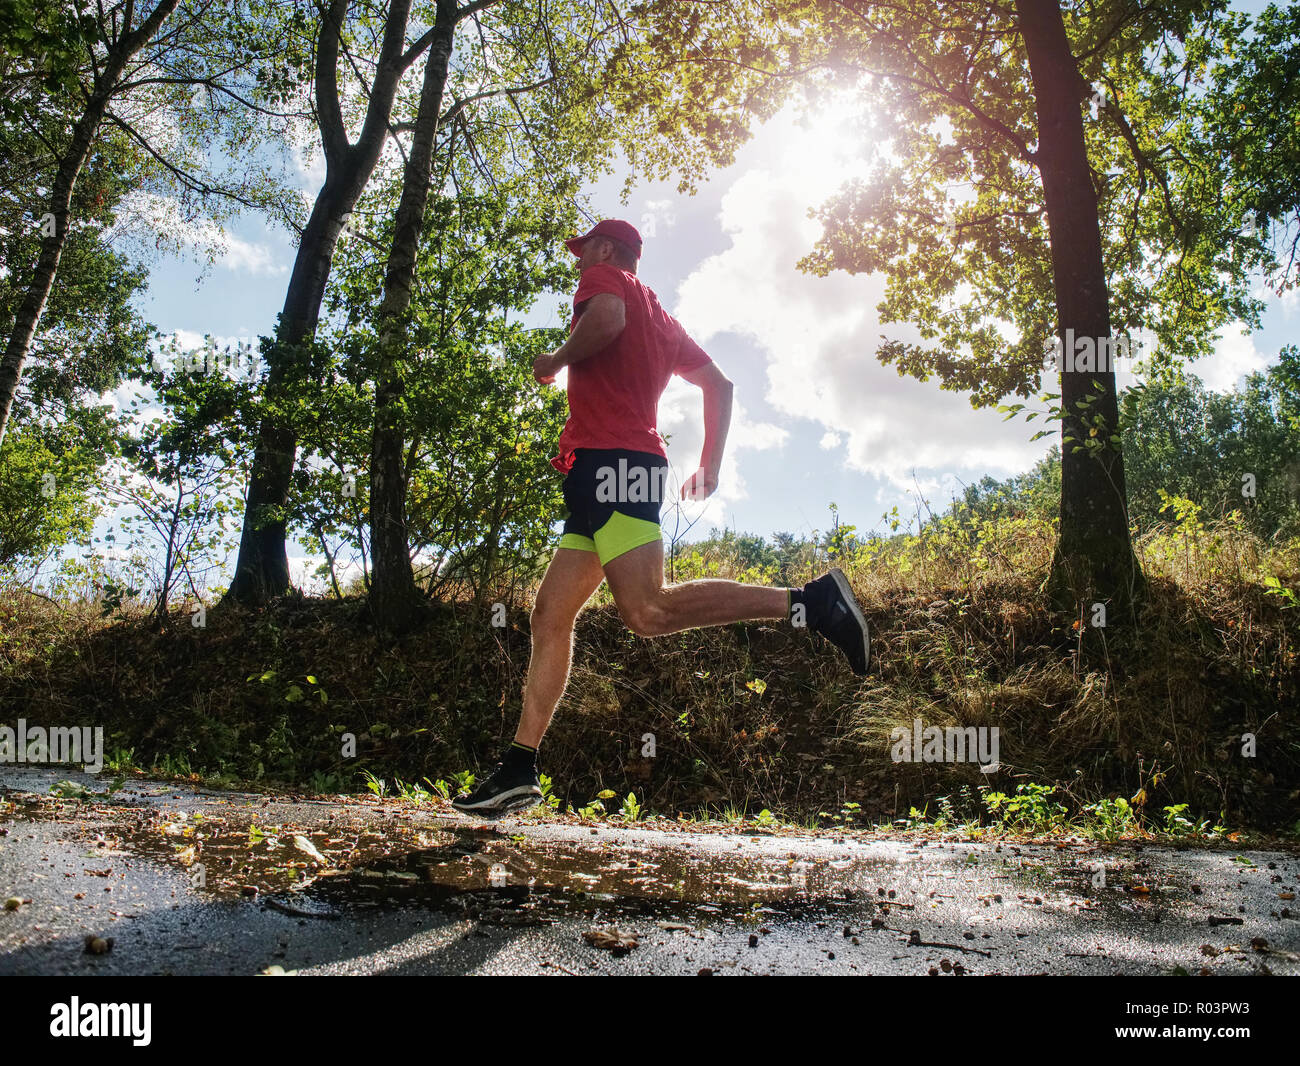 Man runner in yellow black shorts pants and red t-shirt is jumping over pool on asphalt road. Evening fitnes exercise in fall park - Stock Image